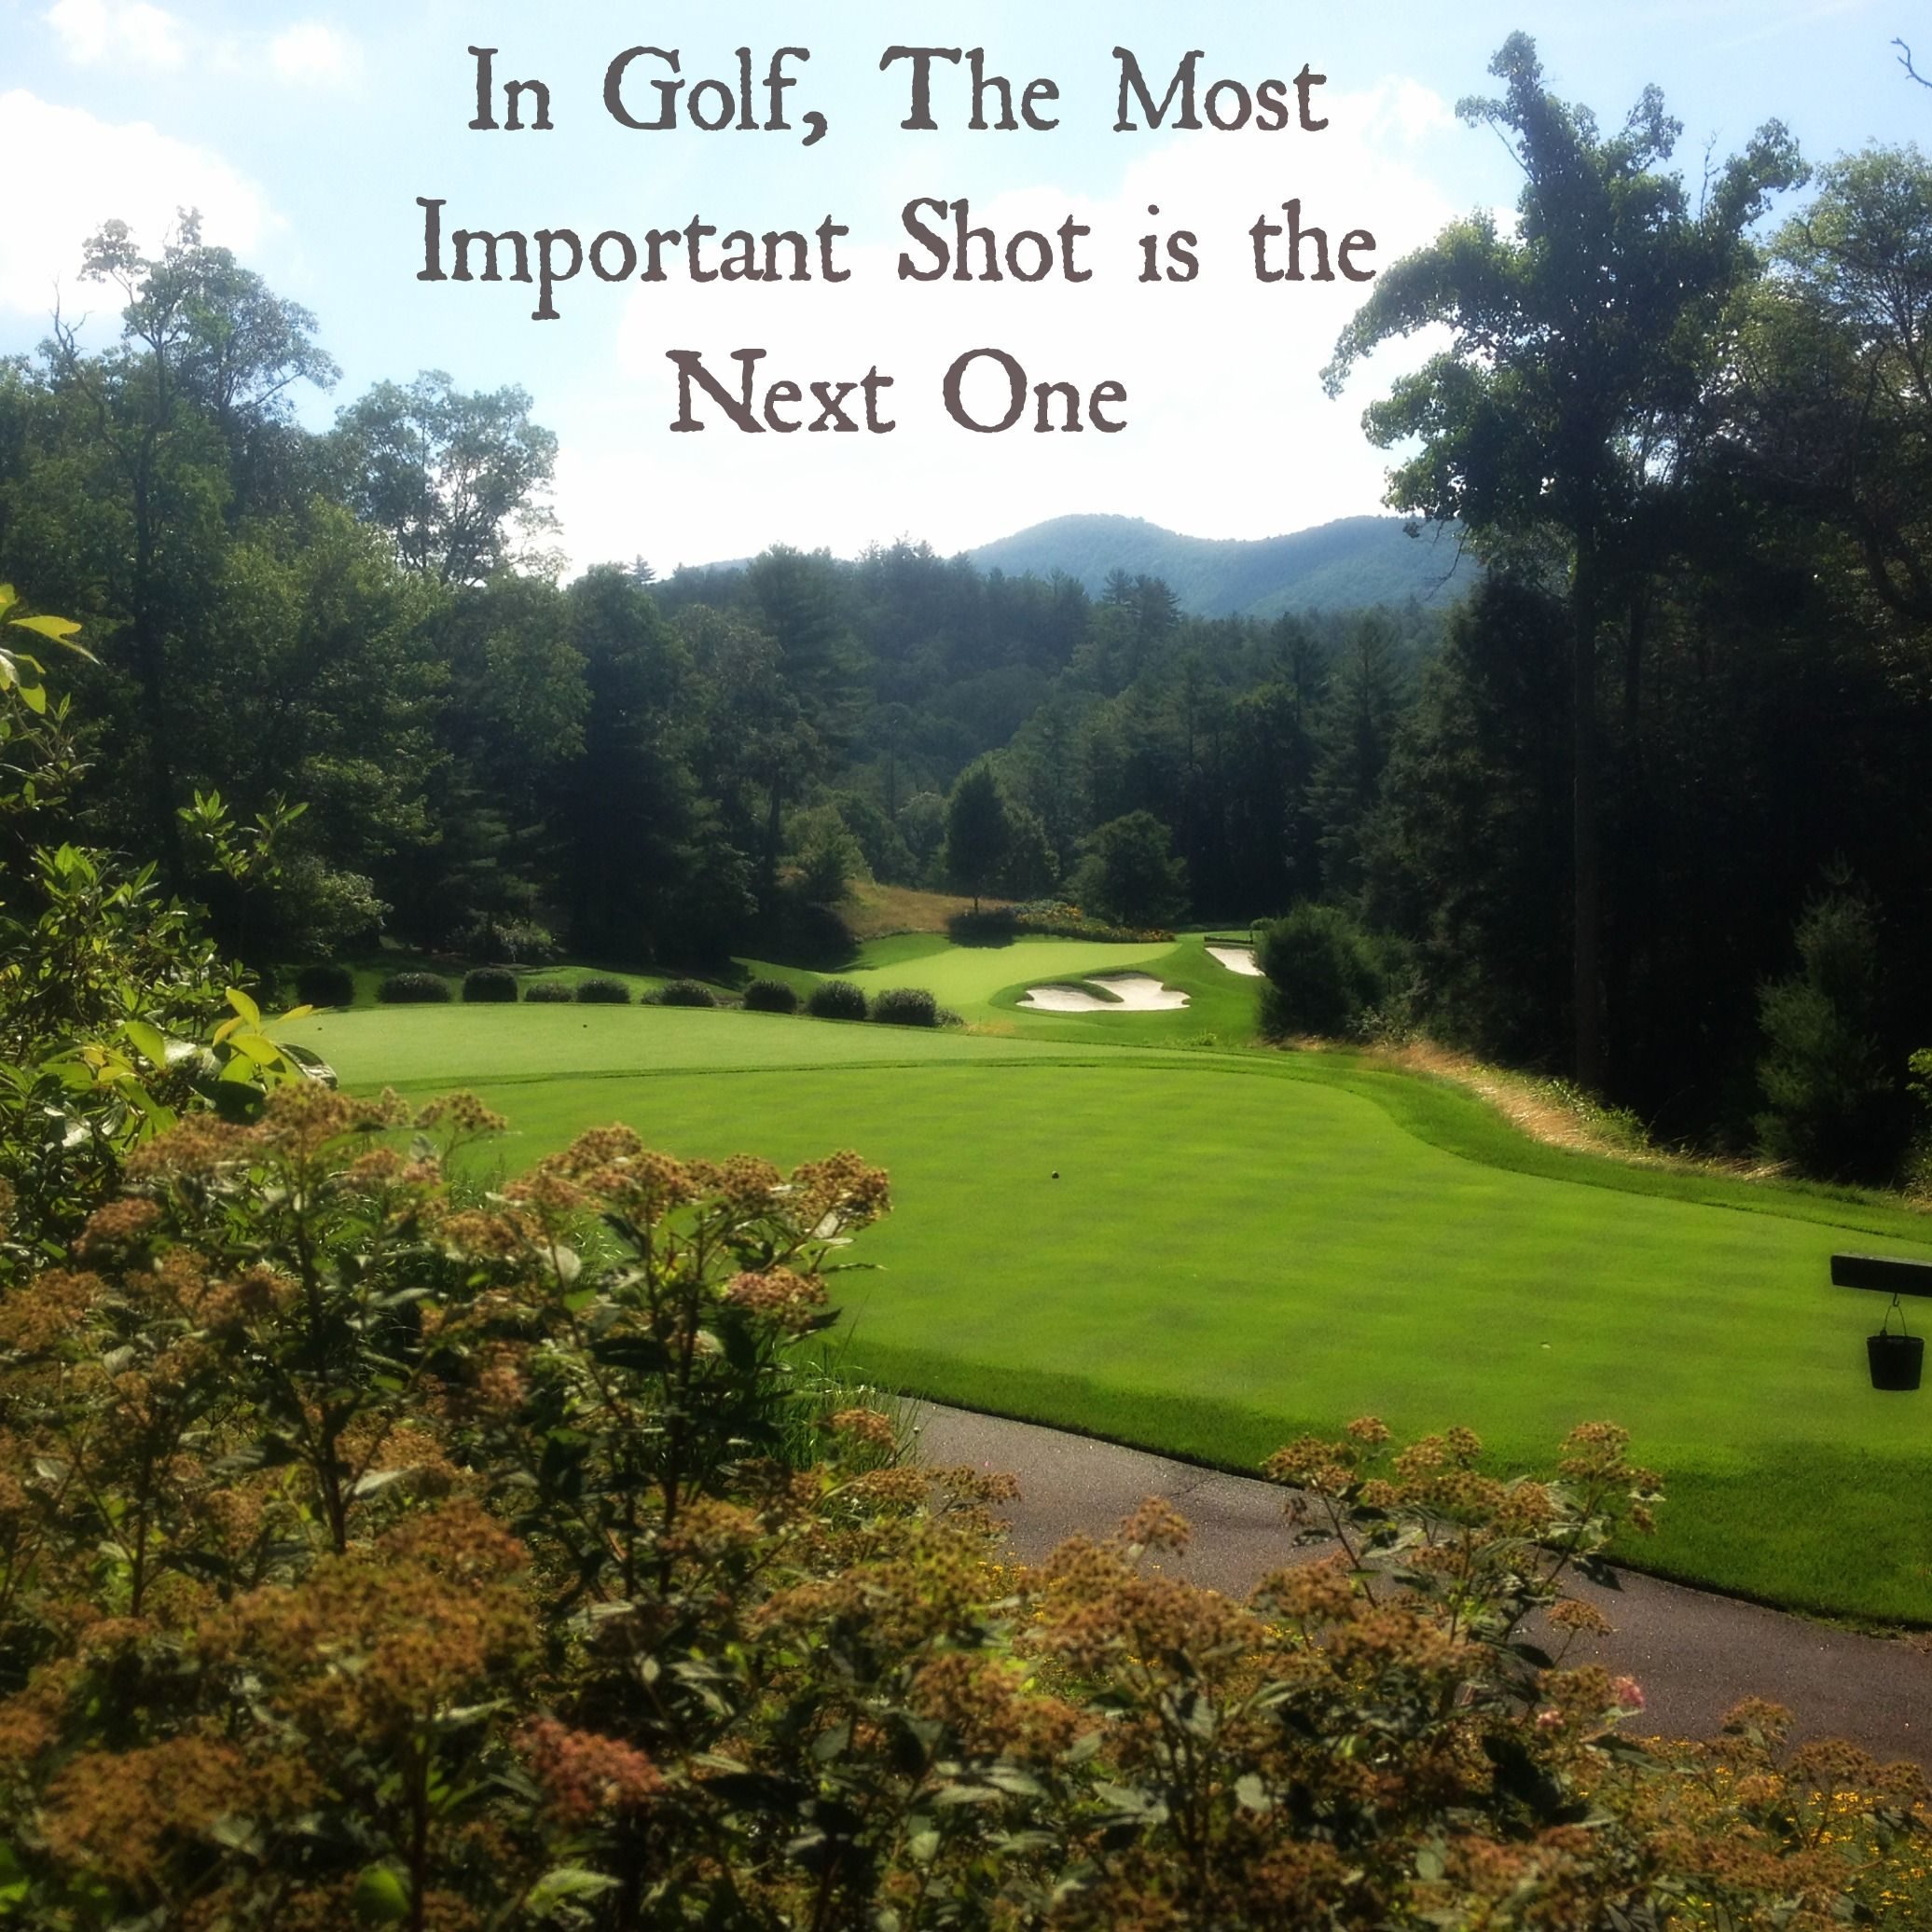 Golf And Life Quotes The Next Shot Is Always The Most Important Golf Motivation Life